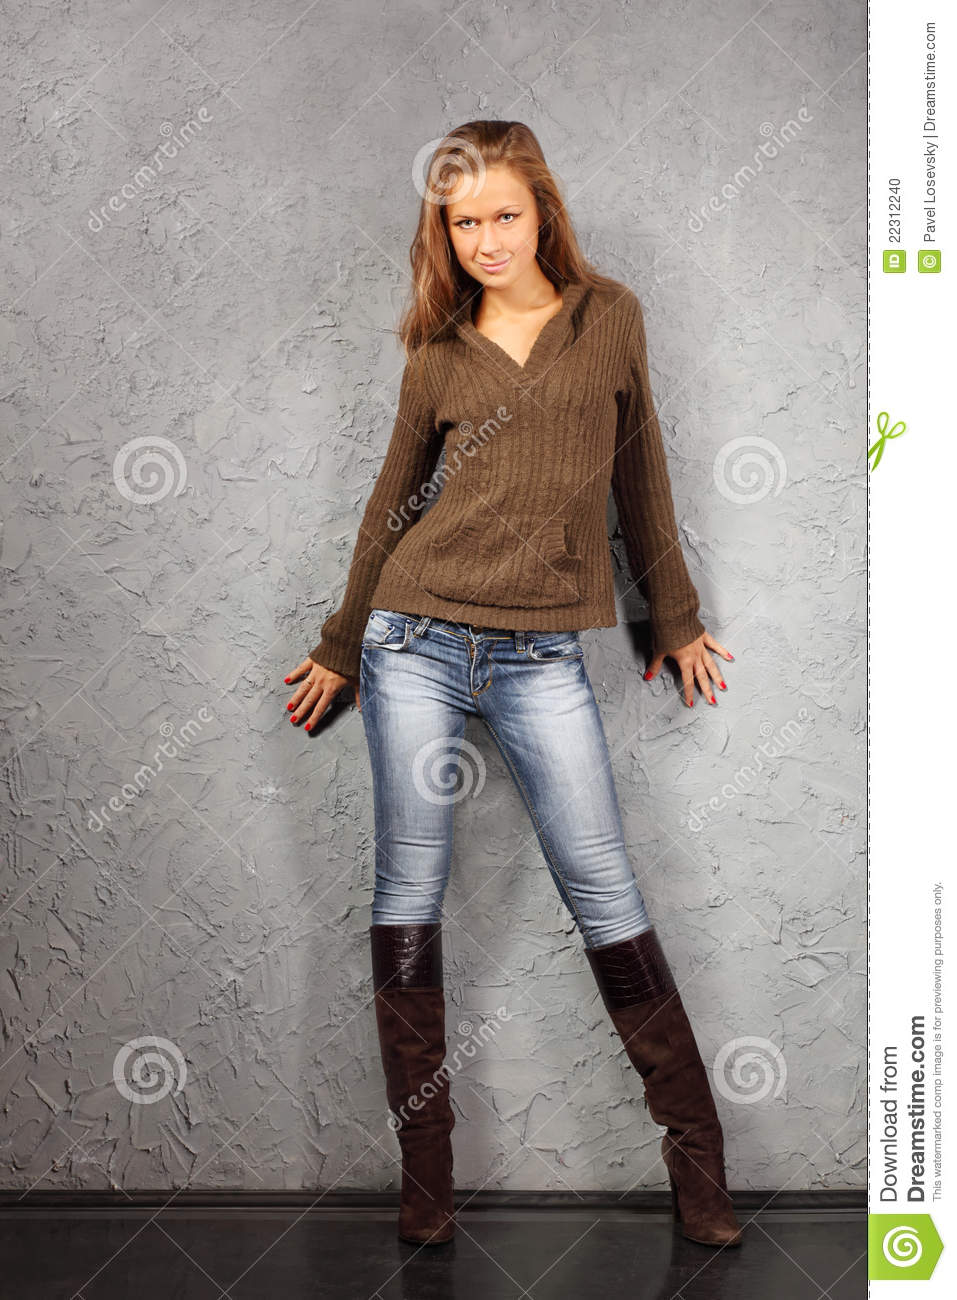 Beautiful Beautiful Woman Legs Wearing Heel Shoes Stock Photo 74864089 - Shutterstock